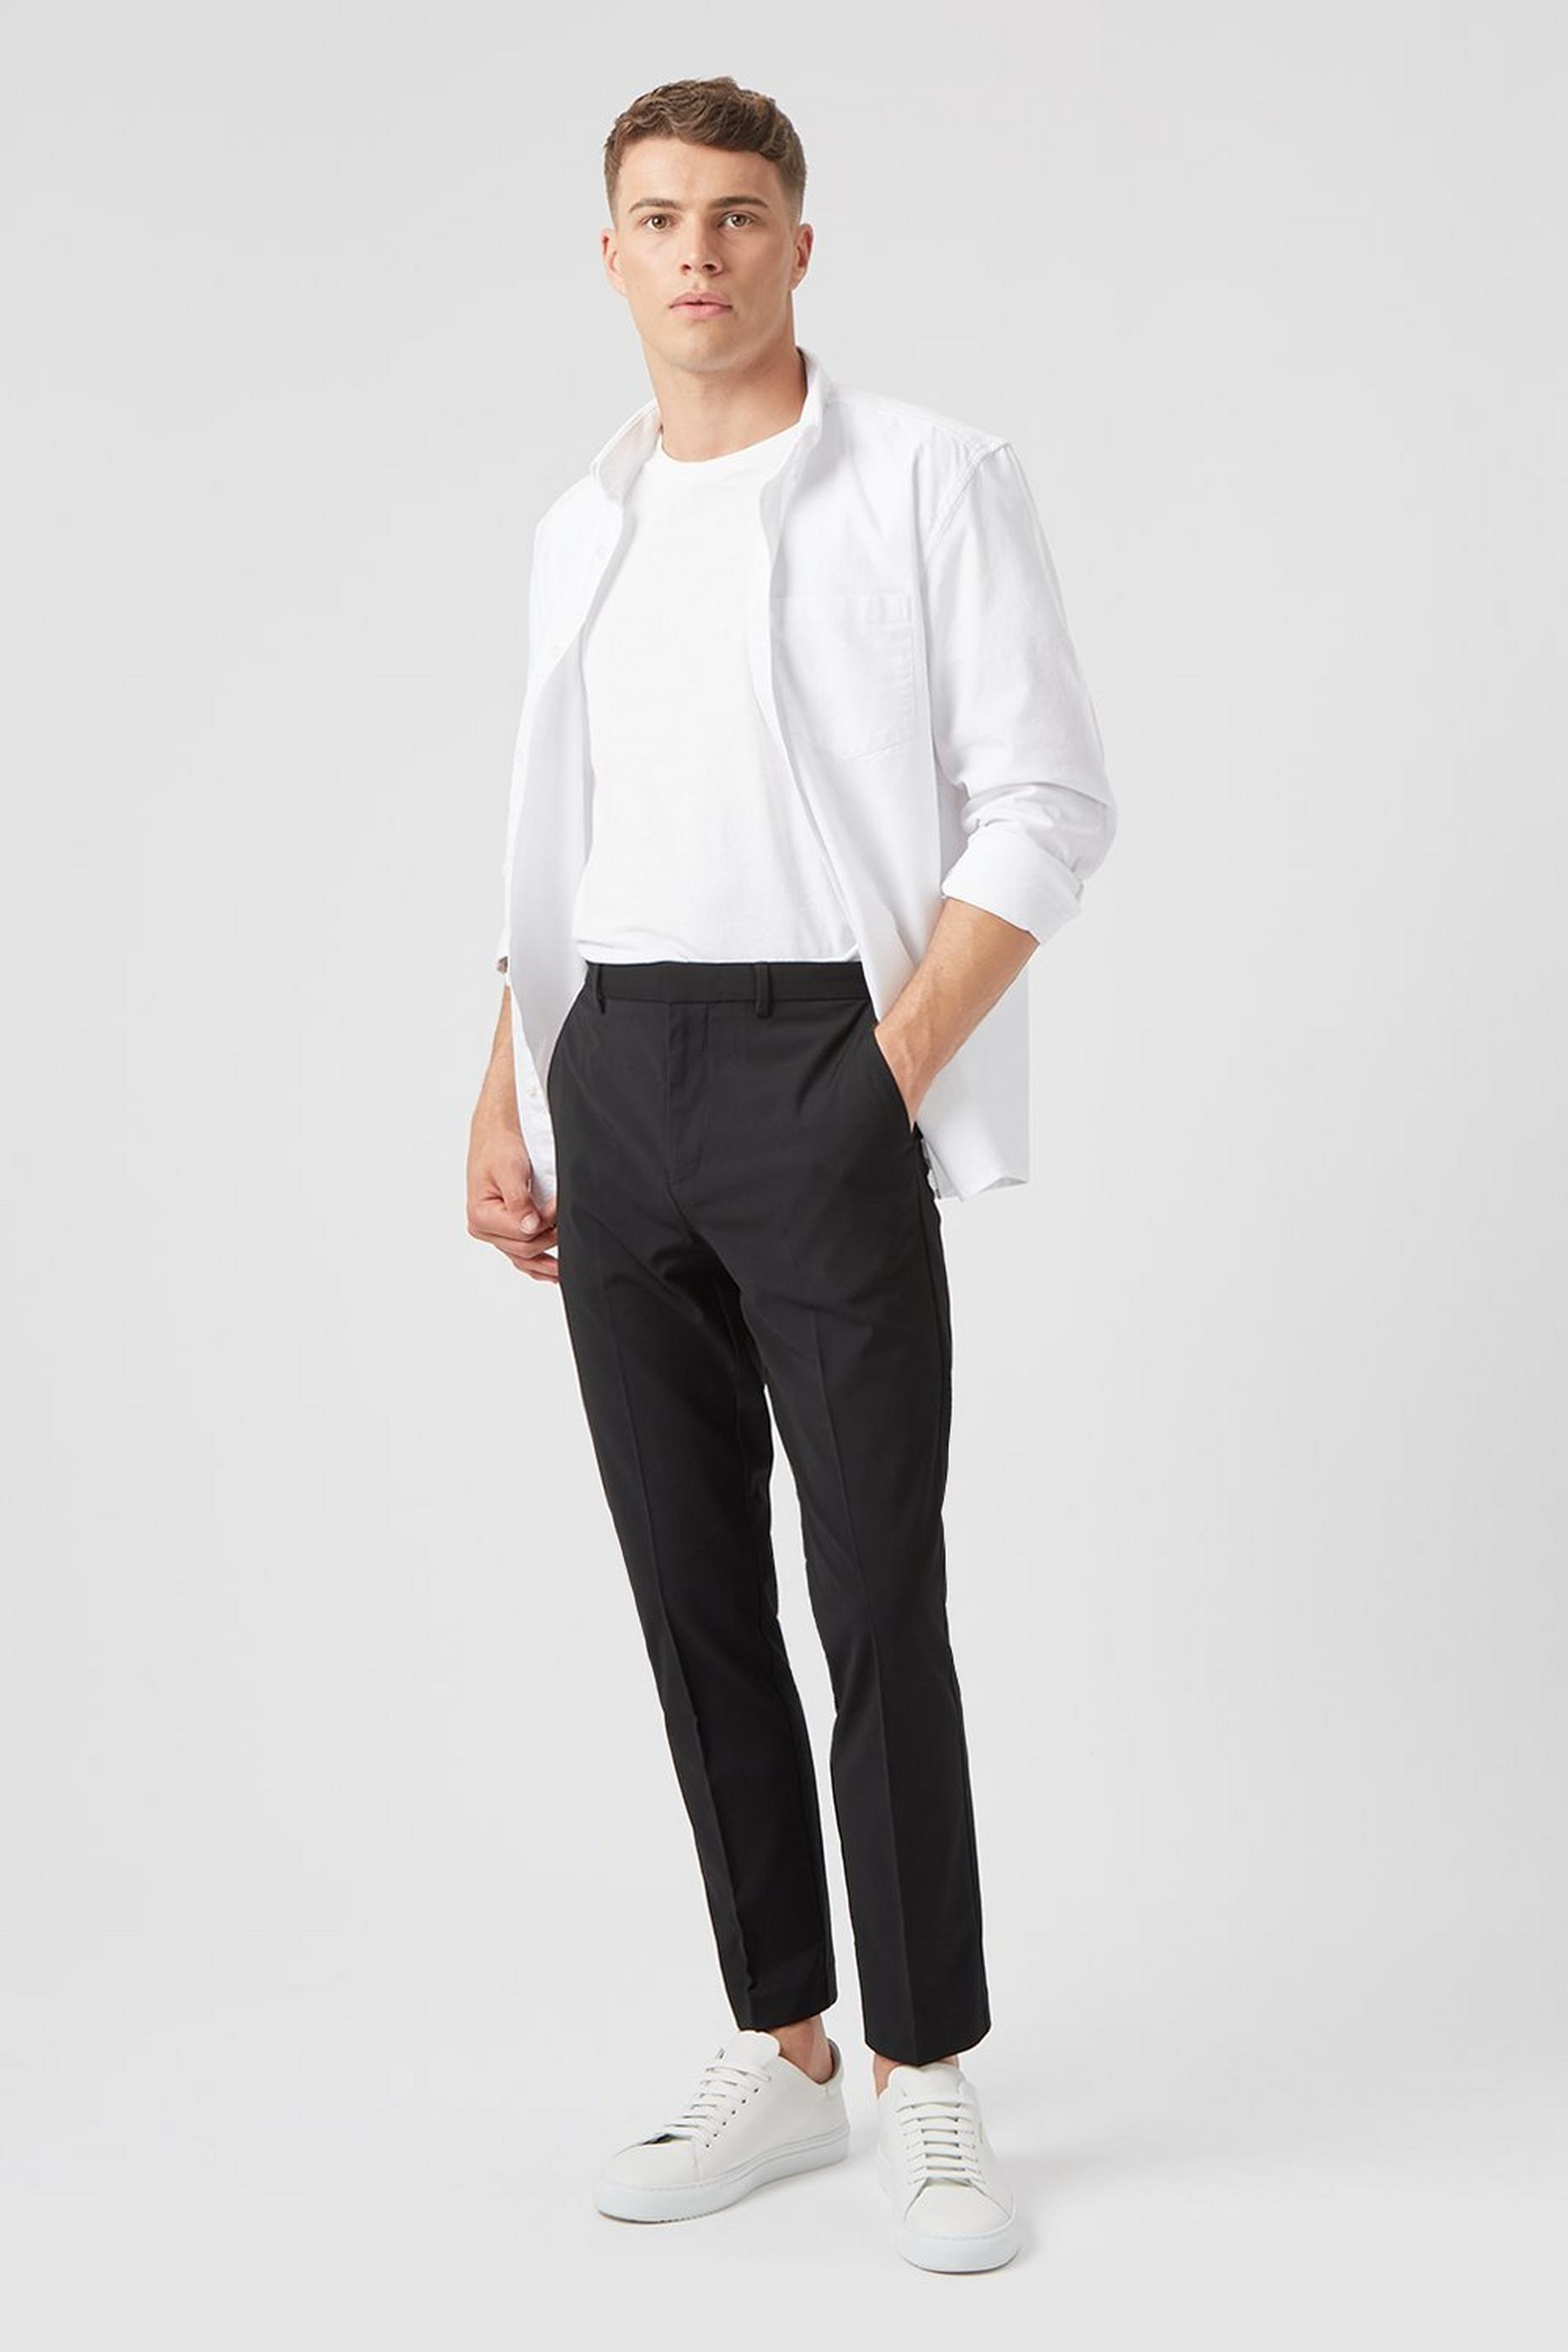 Black Skinny Fit Stretch Trousers